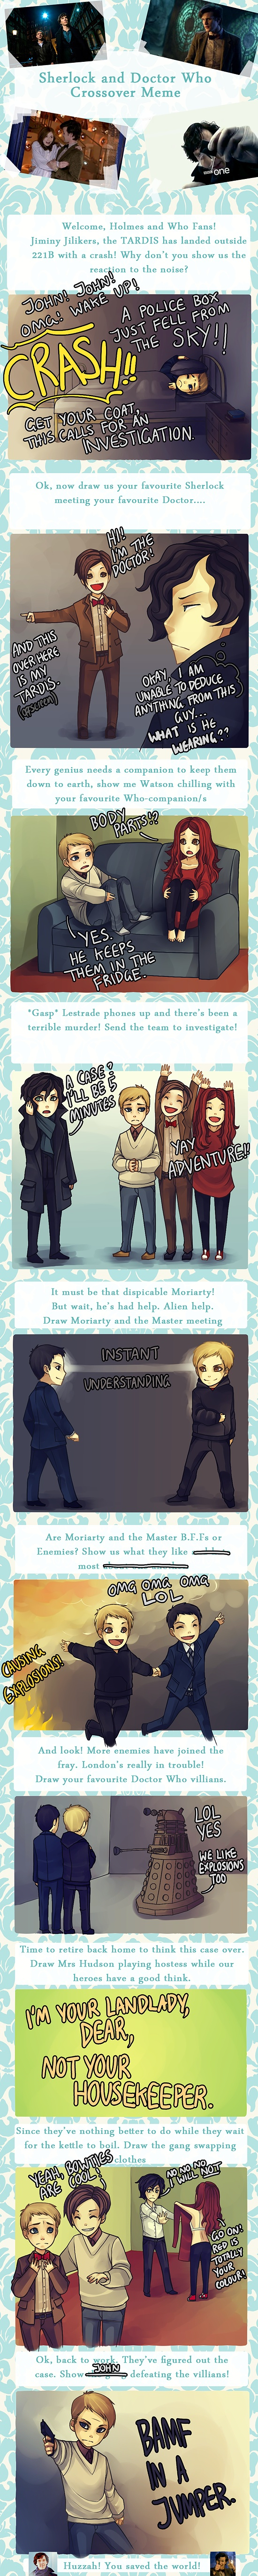 Sherlock and Doctor Who crossover prompts. I MUST DO THIS!!!